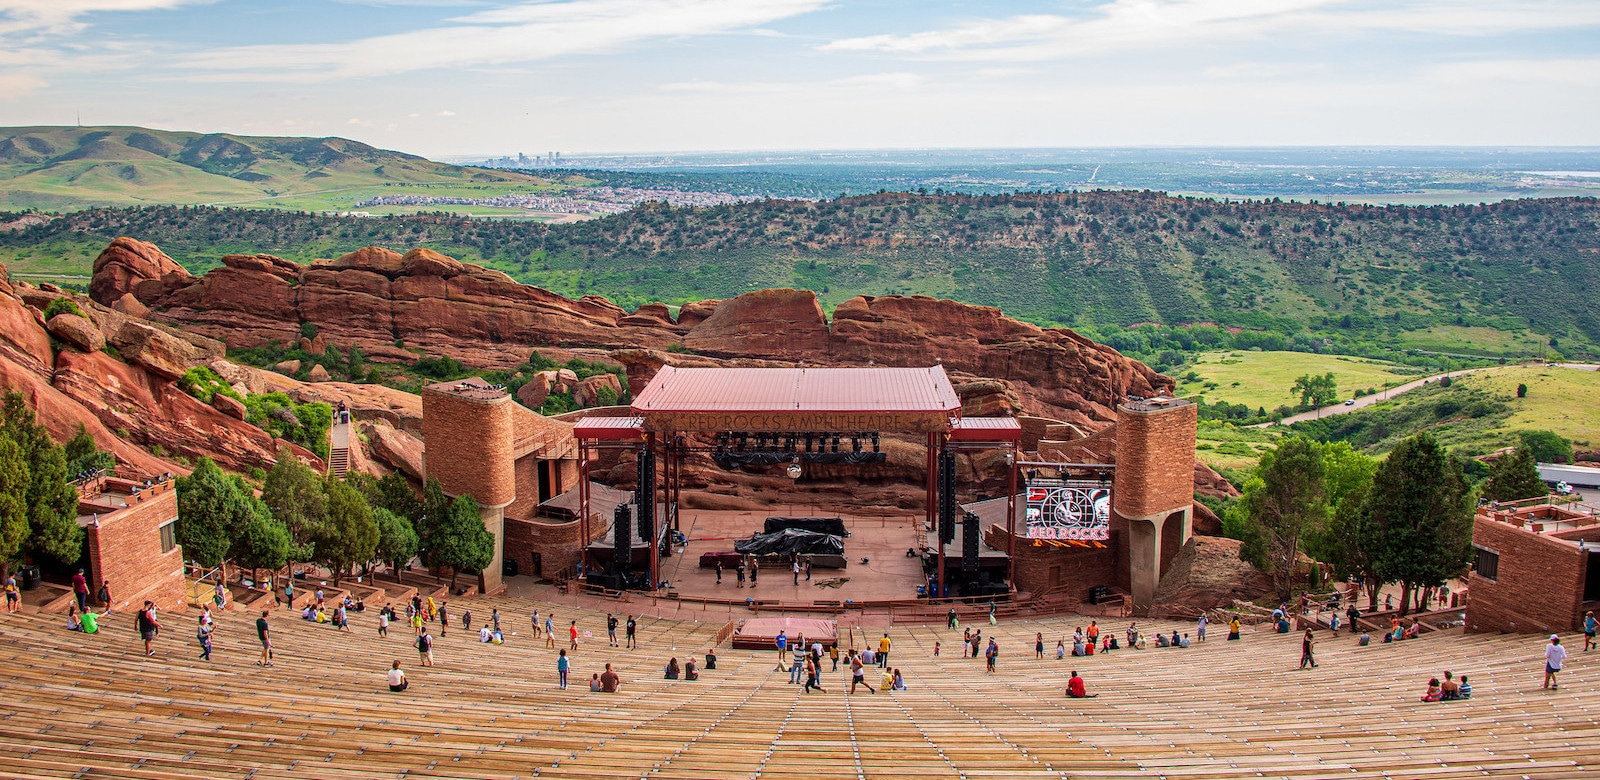 Image of the Red Rock Amphitheater in Morrison, CO